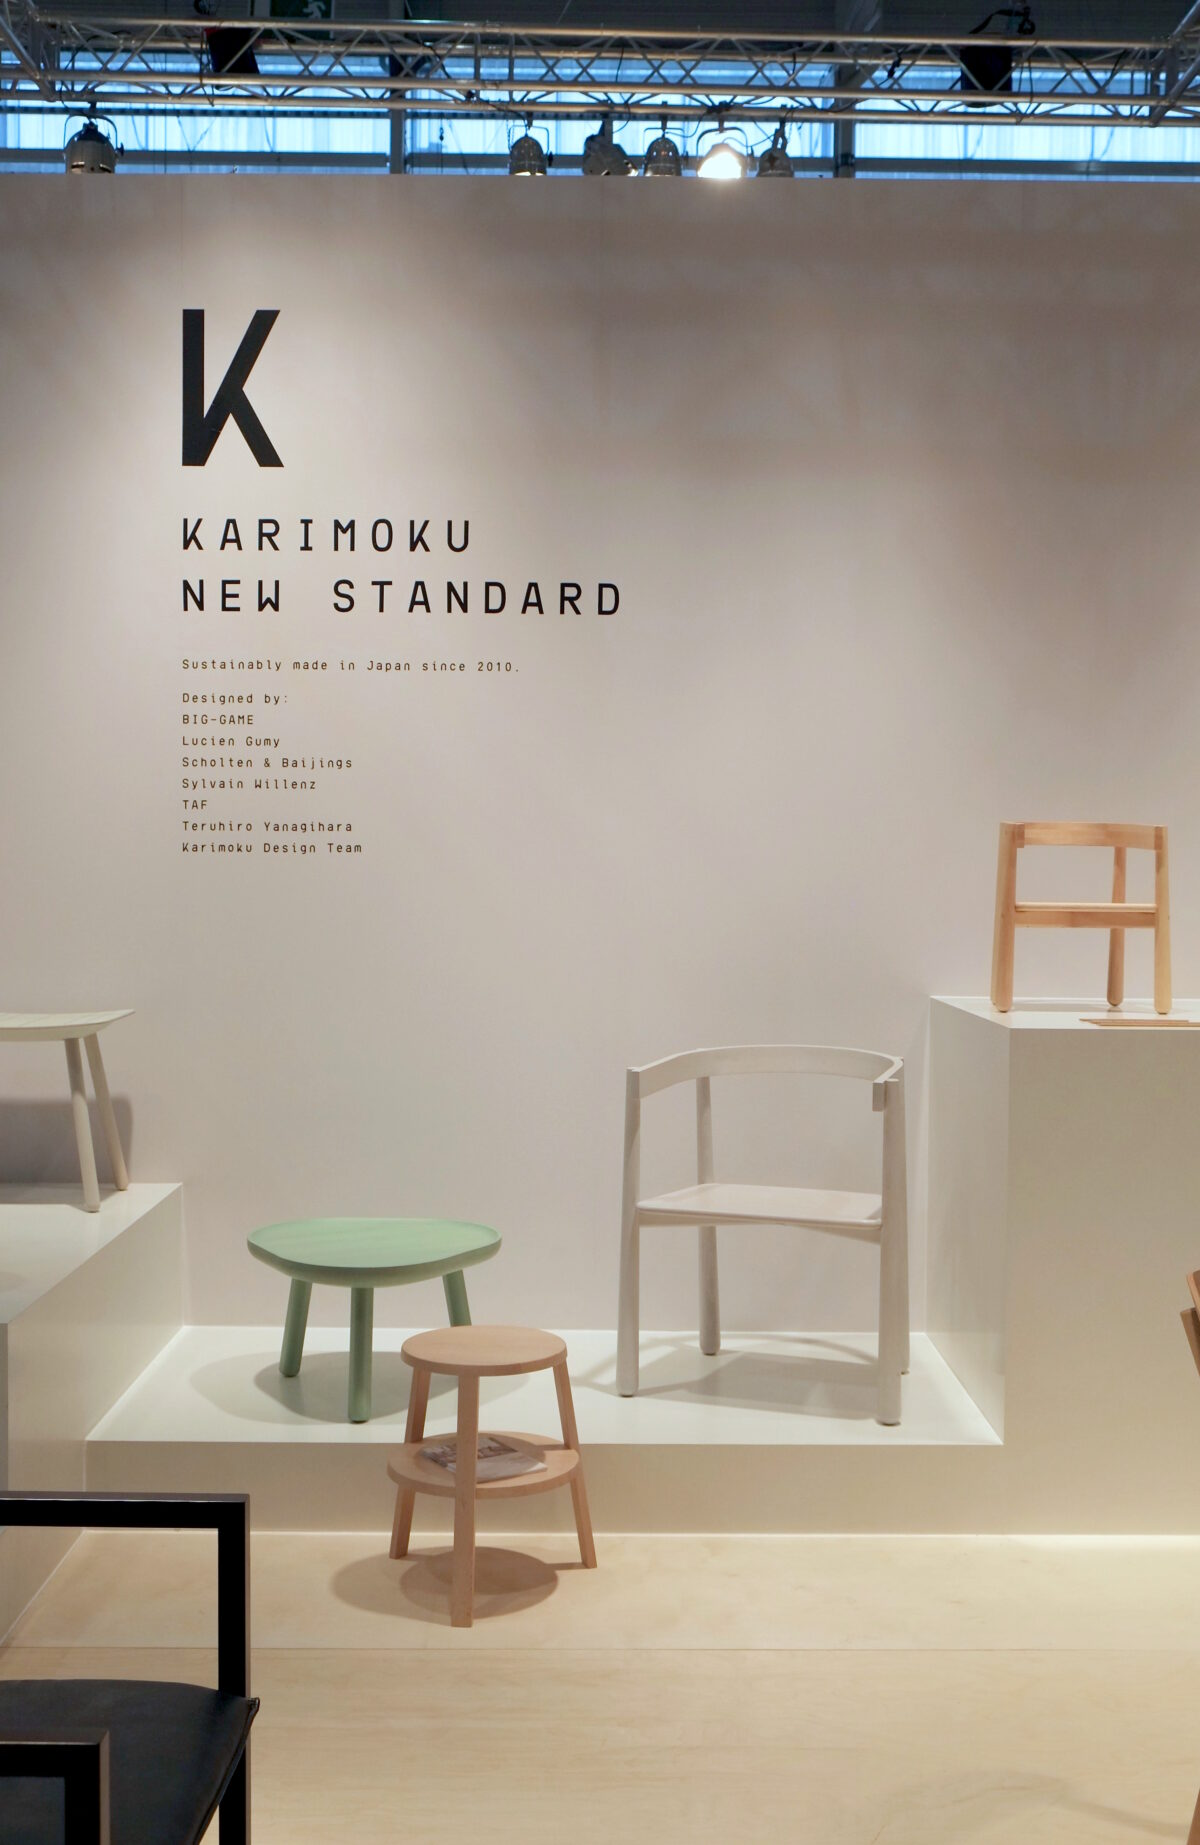 Maison&Objet, Paris 2014